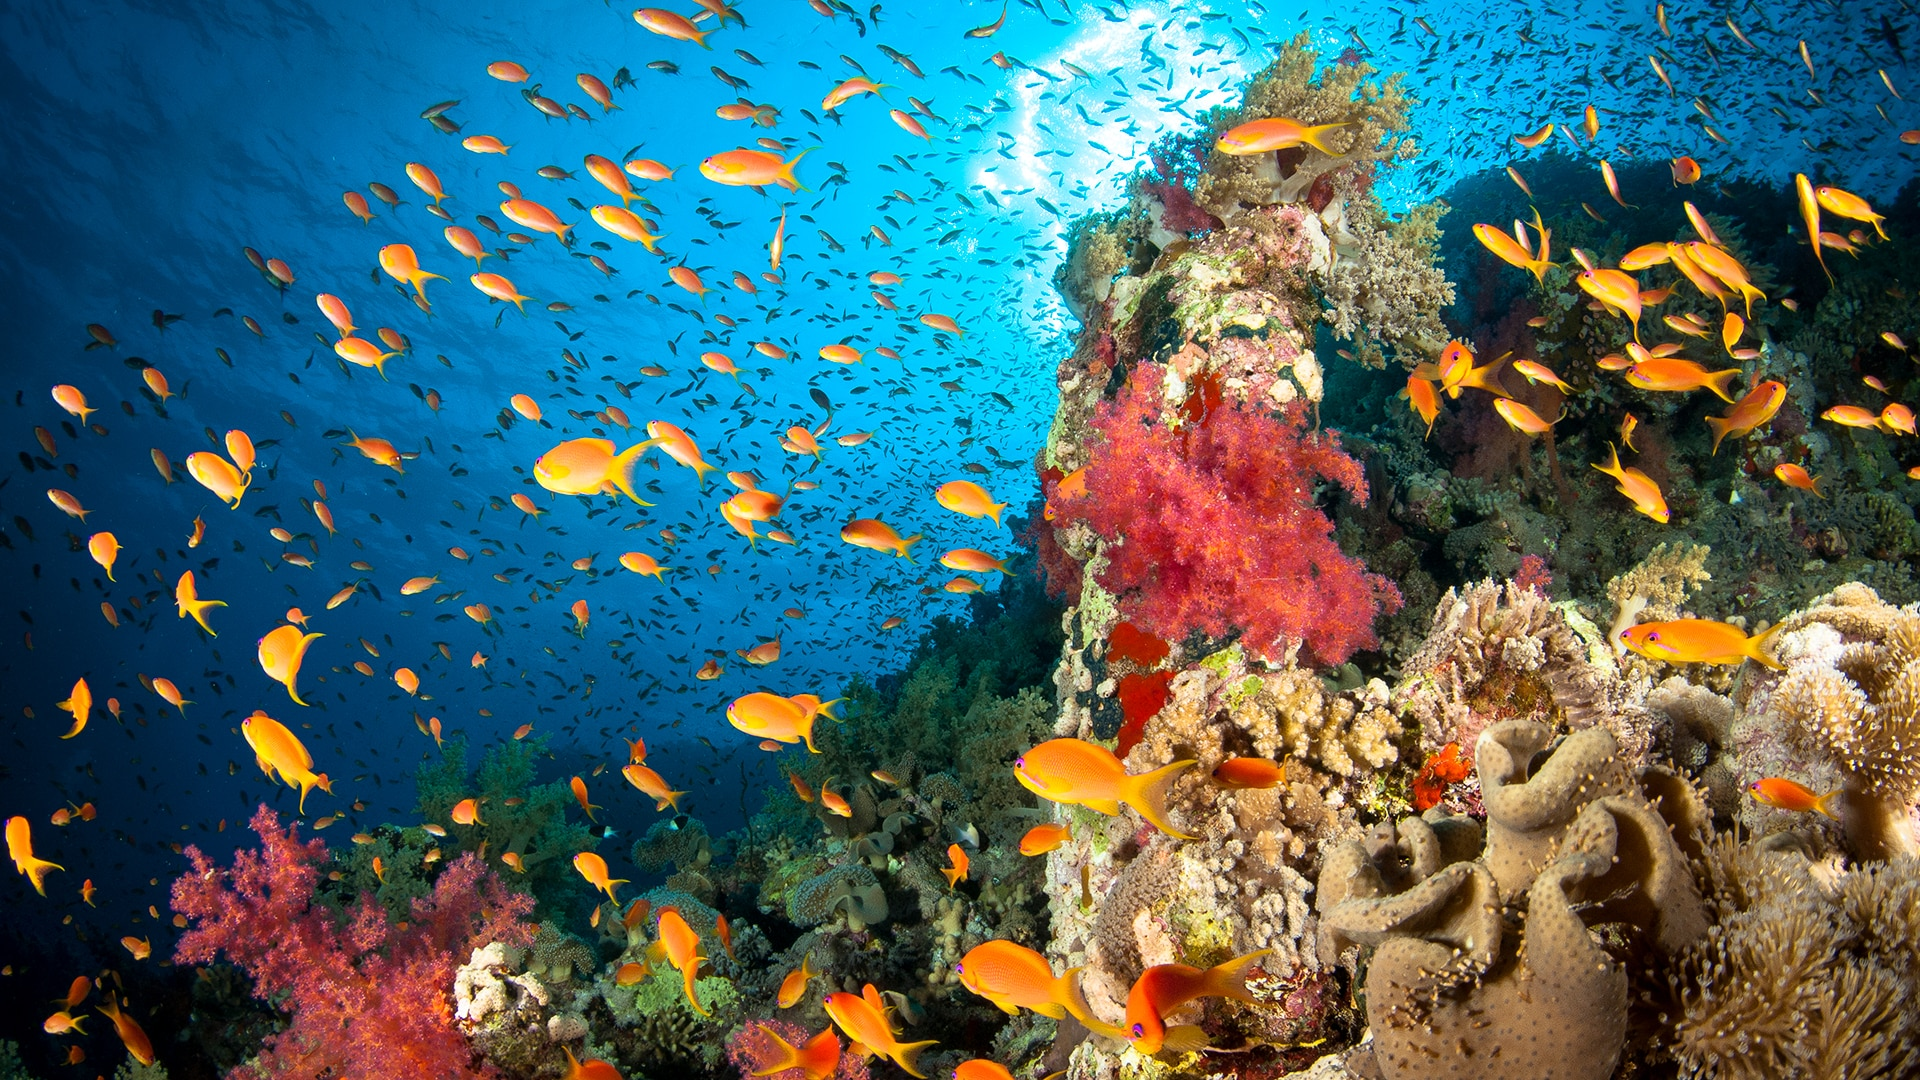 Coral Reef and marine life